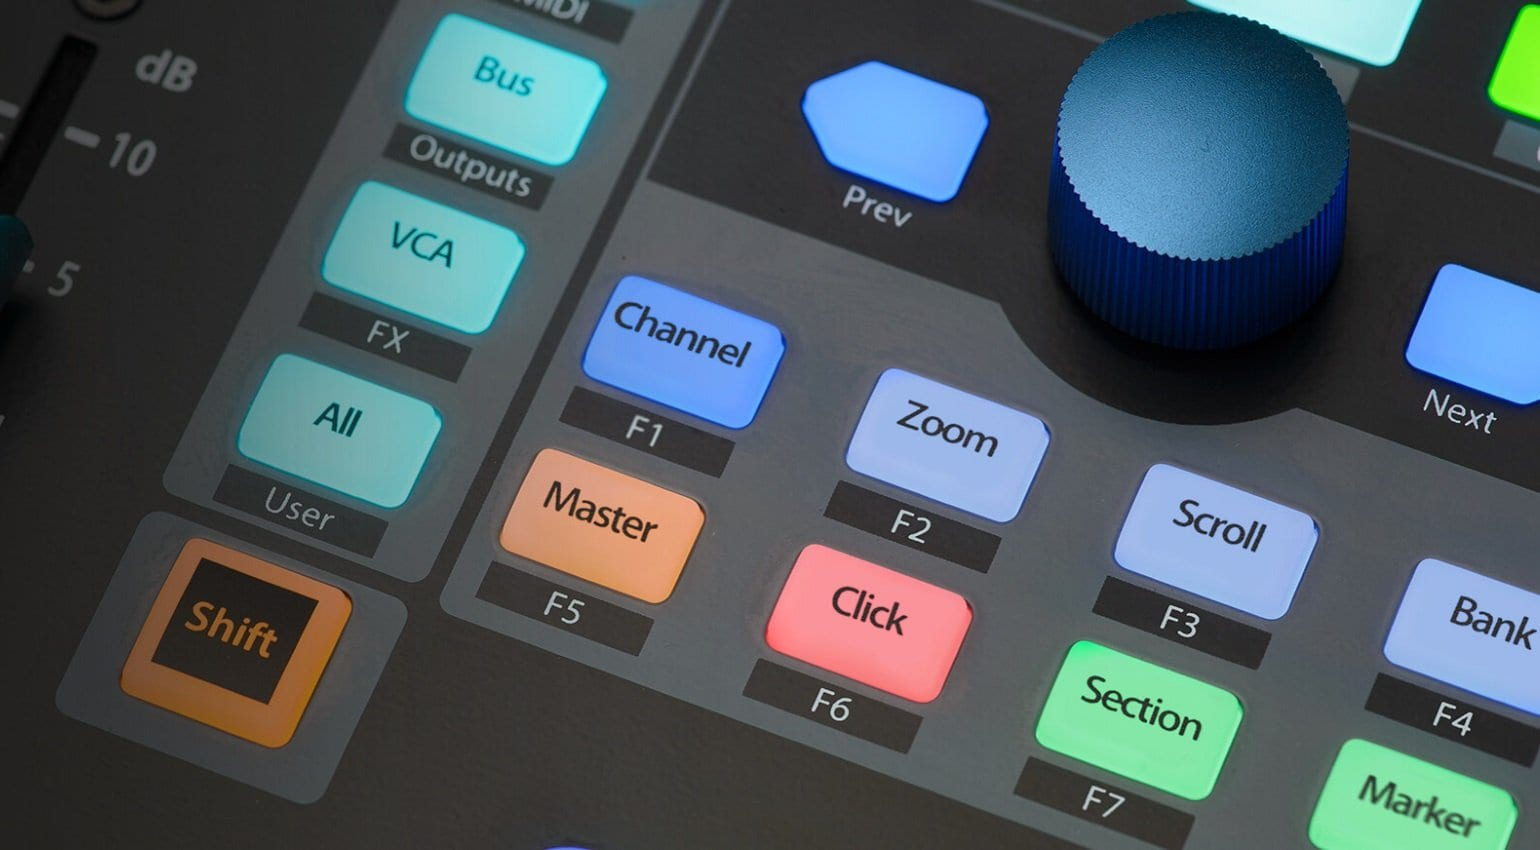 PreSonus plugs in FaderPort 16 controller for hands-on DAW mixing